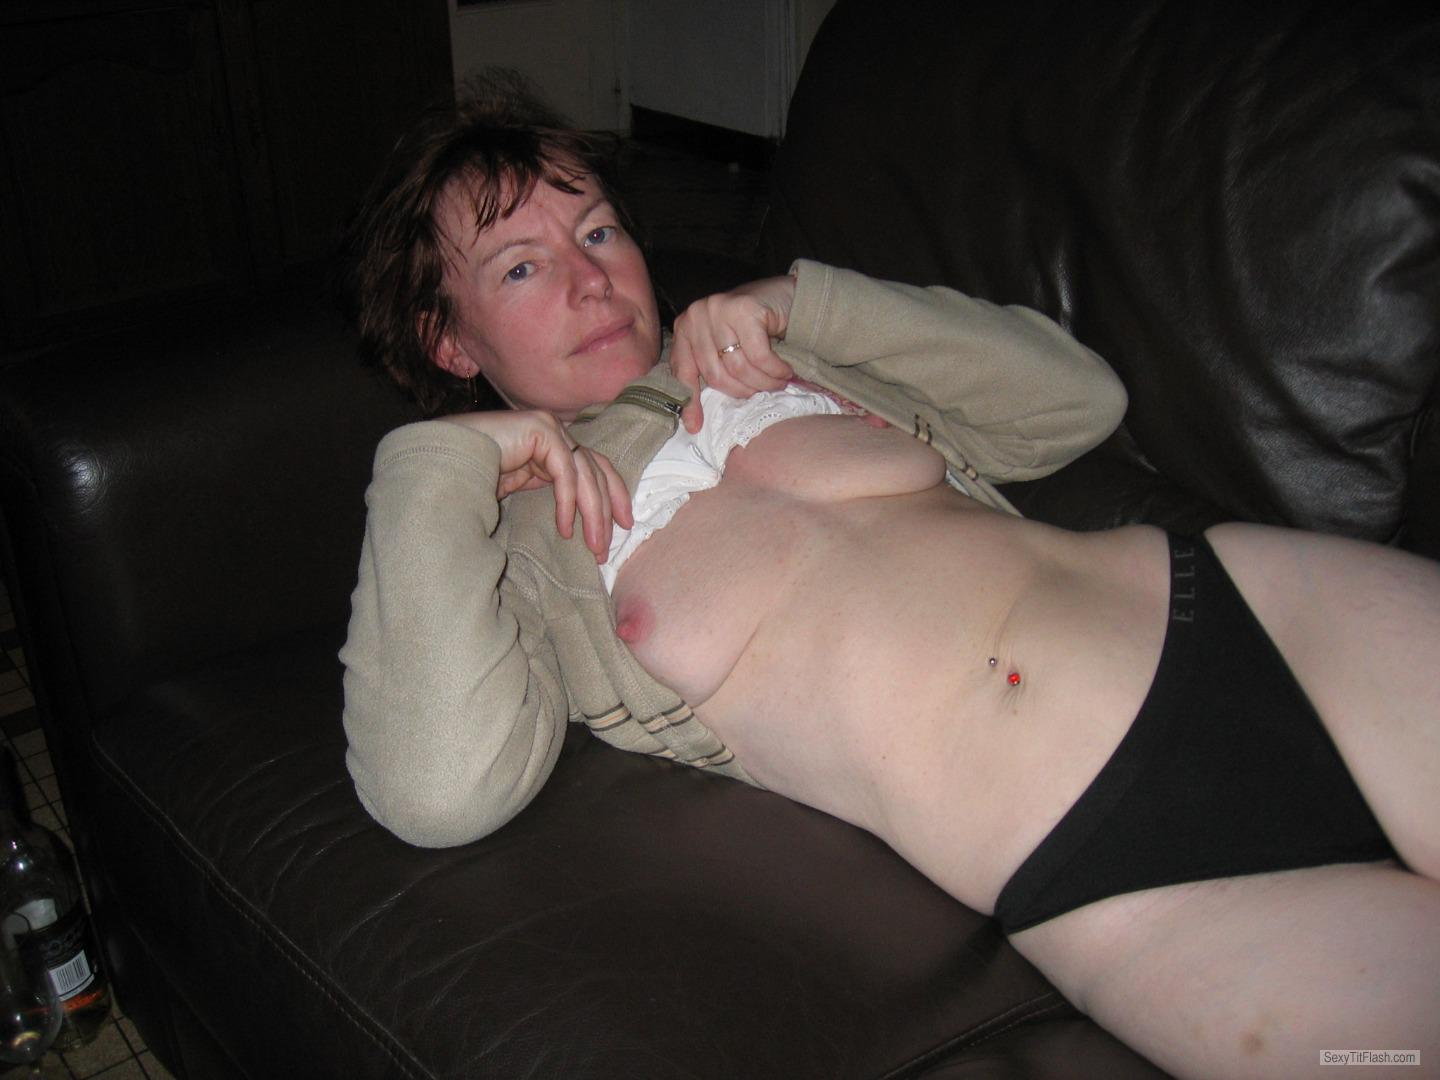 Tit Flash: My Small Tits - Topless Tracie from United Kingdom